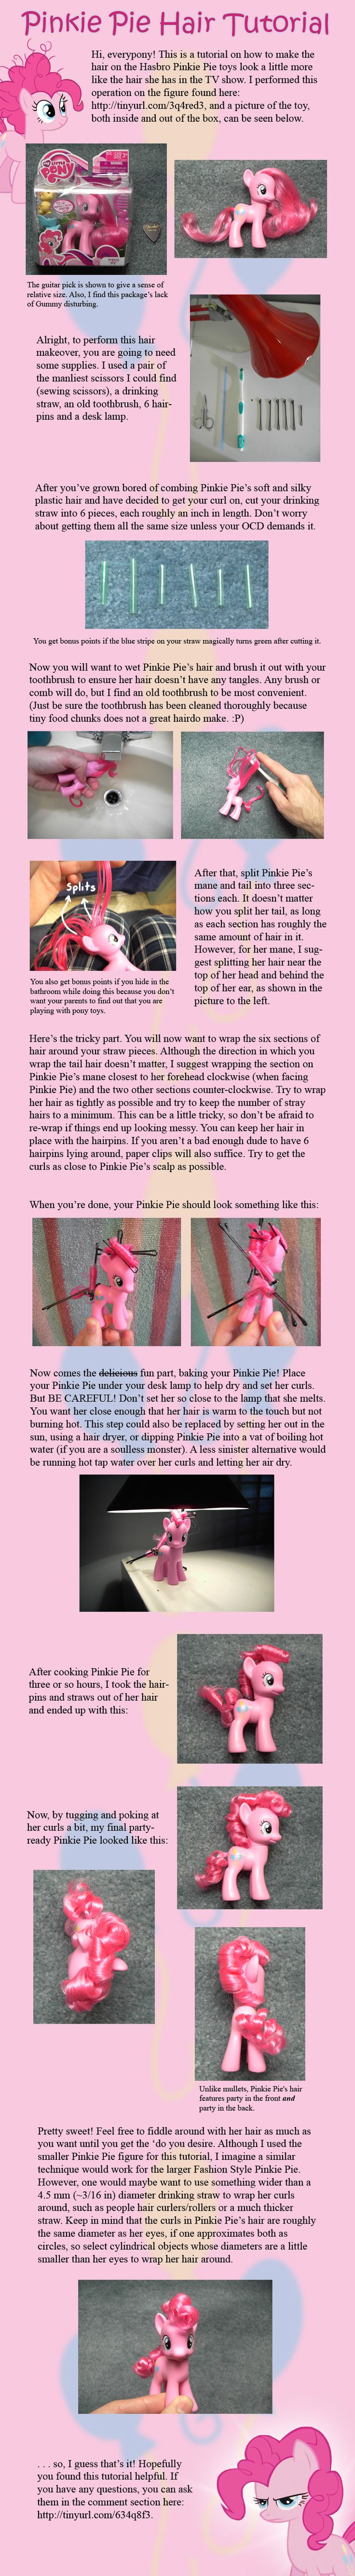 Lighting dust exe has stopped working my little pony friendship is - Pinkie Pie Hair Tutorial By Countschlick On Deviantart I Really Want To Get Into Custom Ponies Now